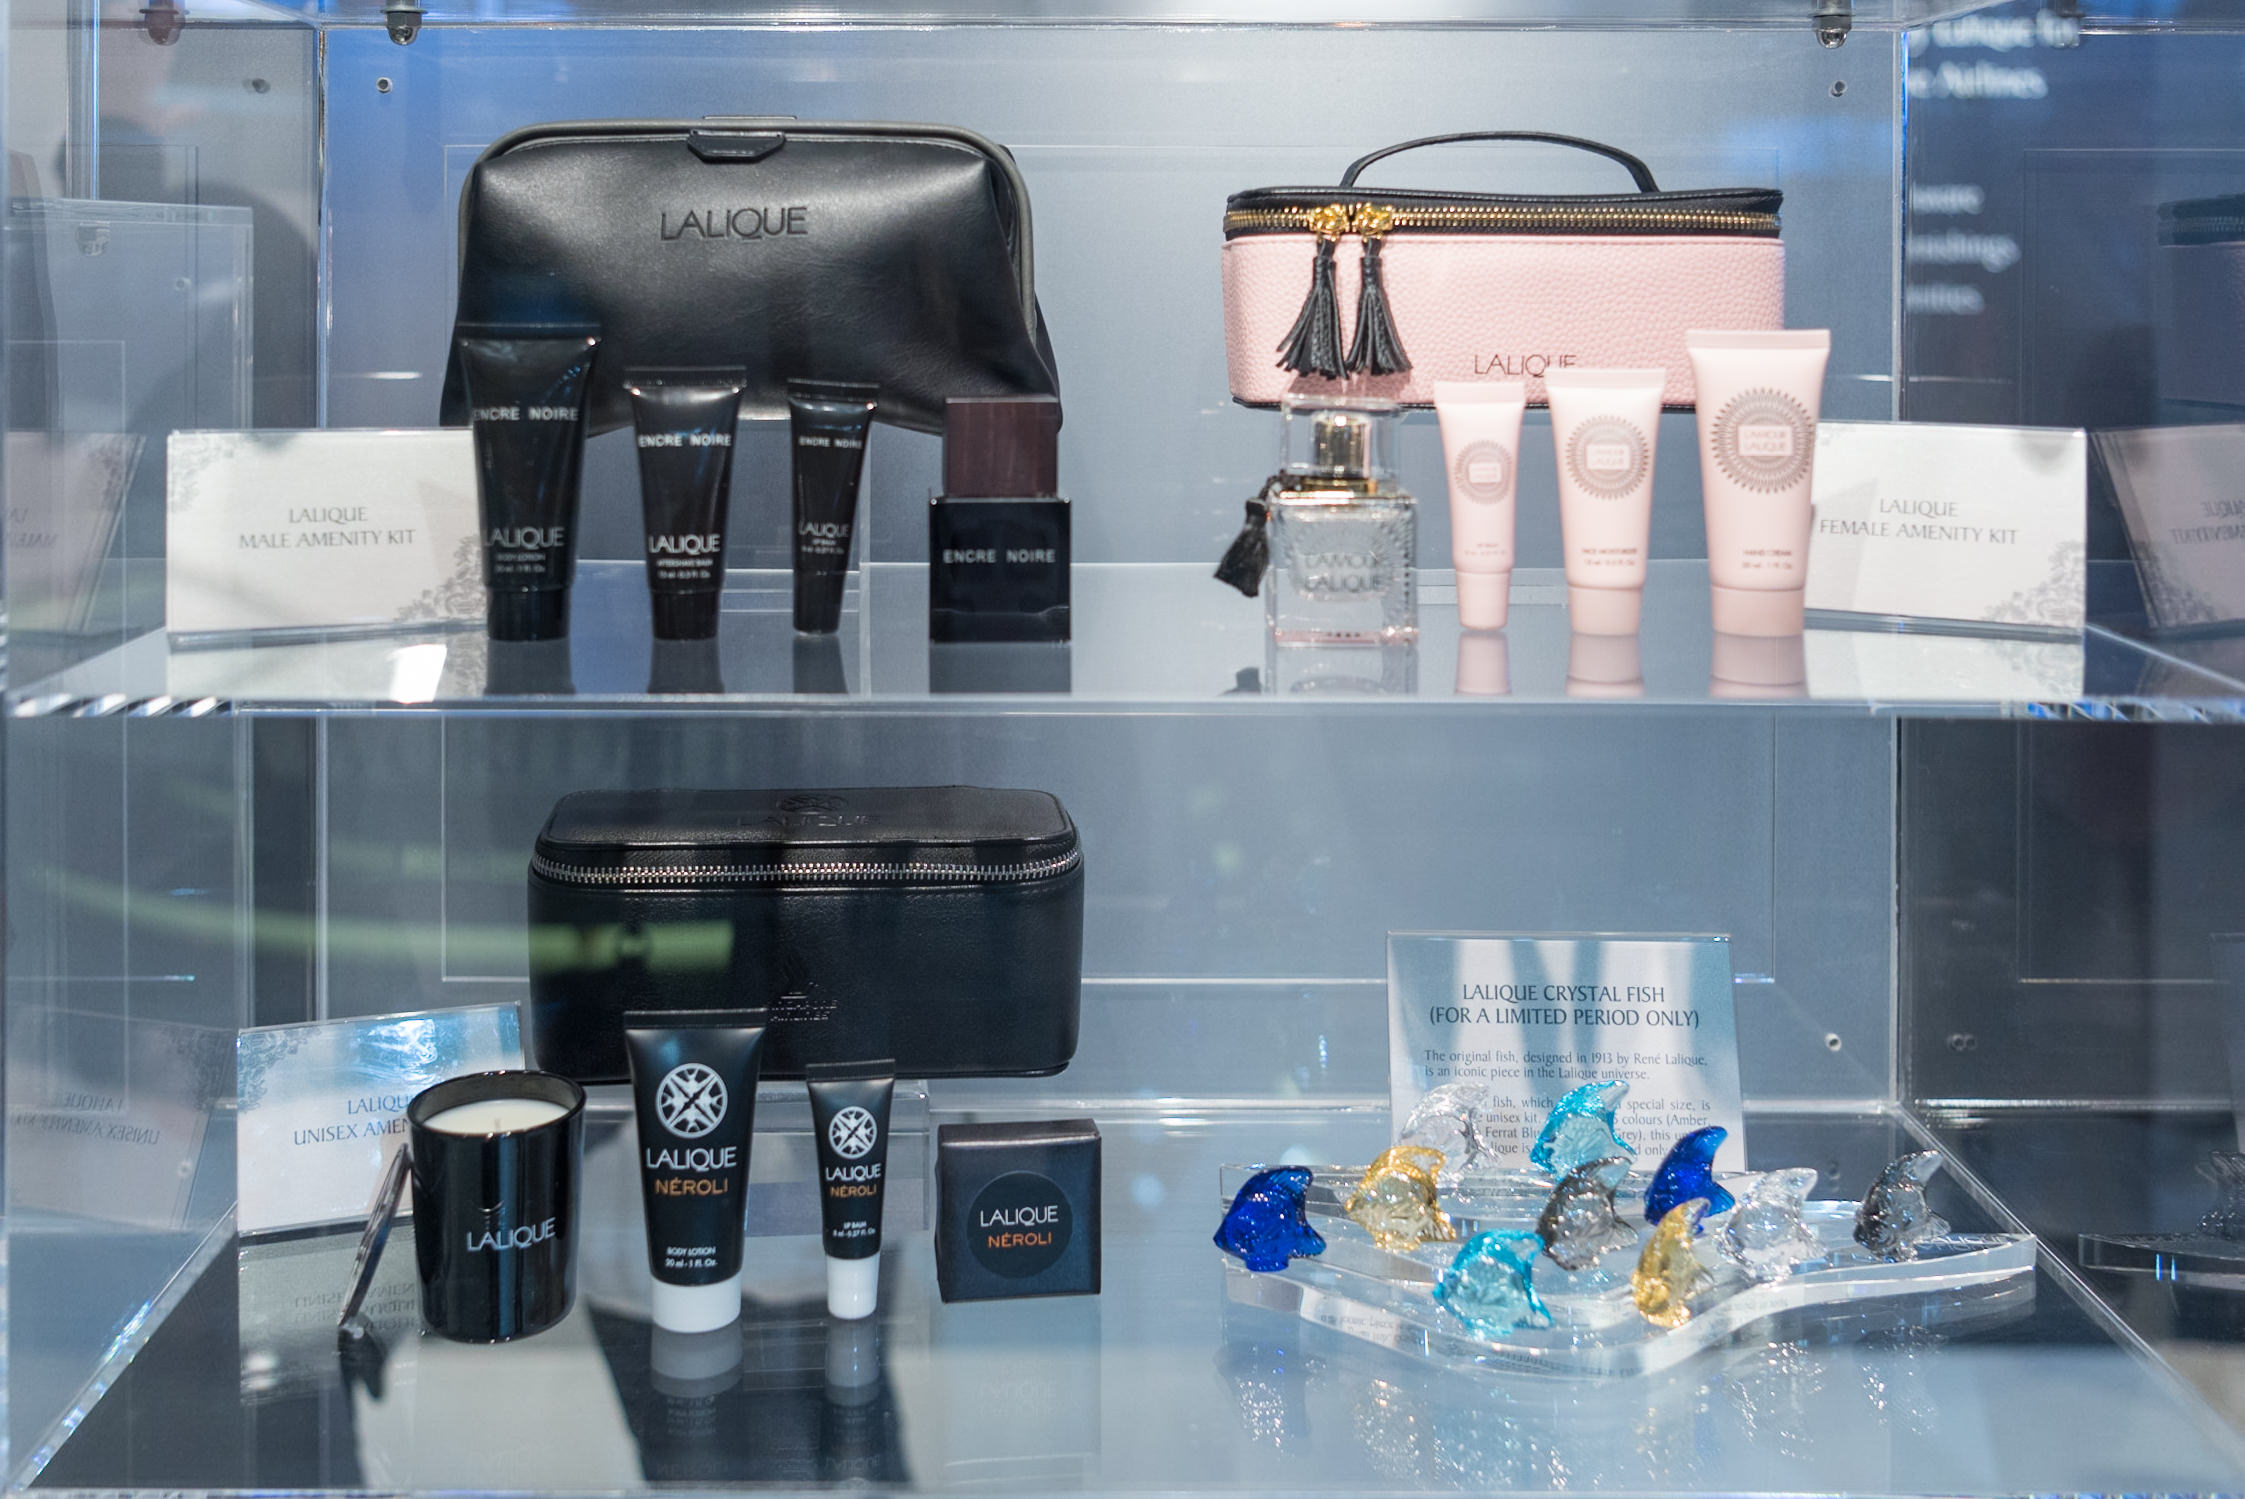 New Lalique Amenity Kits  New Suites (2017) Product on Singapore Airlines' A380